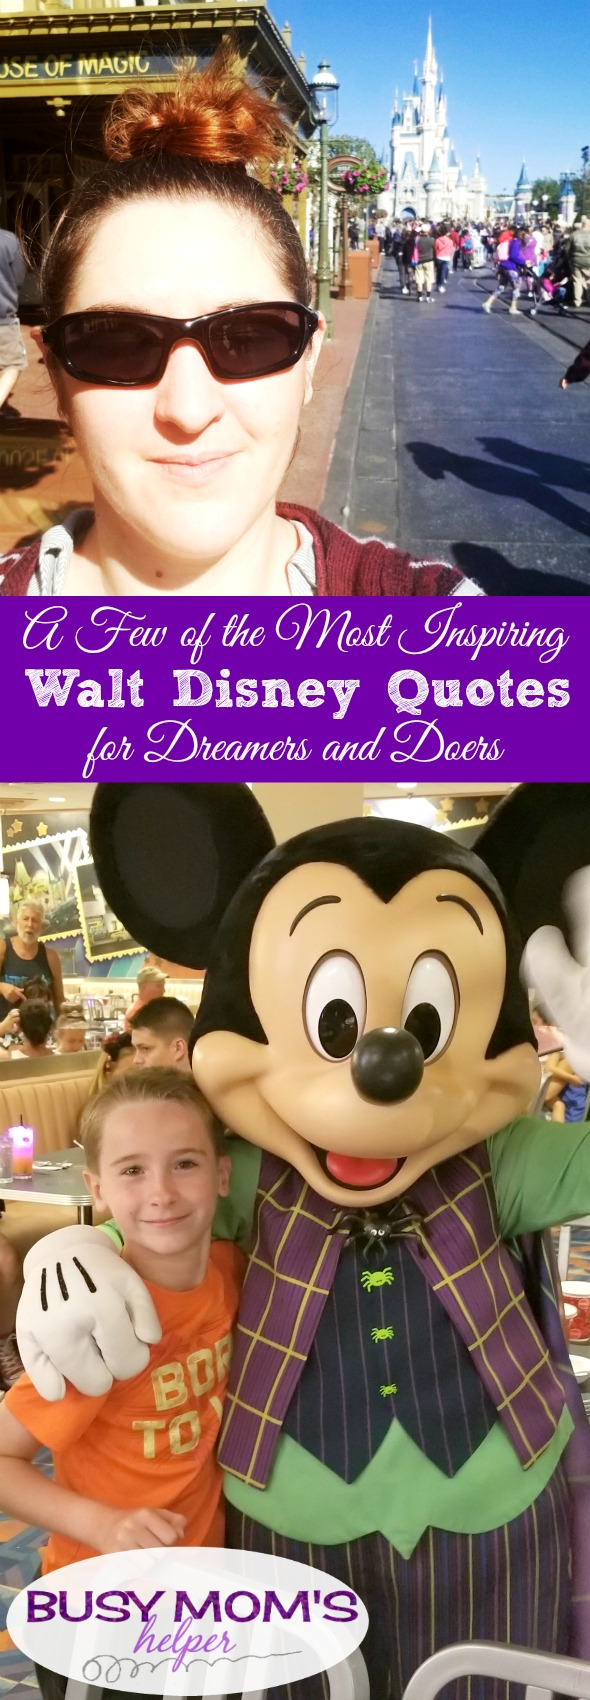 Five of the Most Inspiring Walt Disney Quotes for Dreamers and Doers #waltdisney #waltdisneyworld #wdw #disney #disneyland #disneyquotes